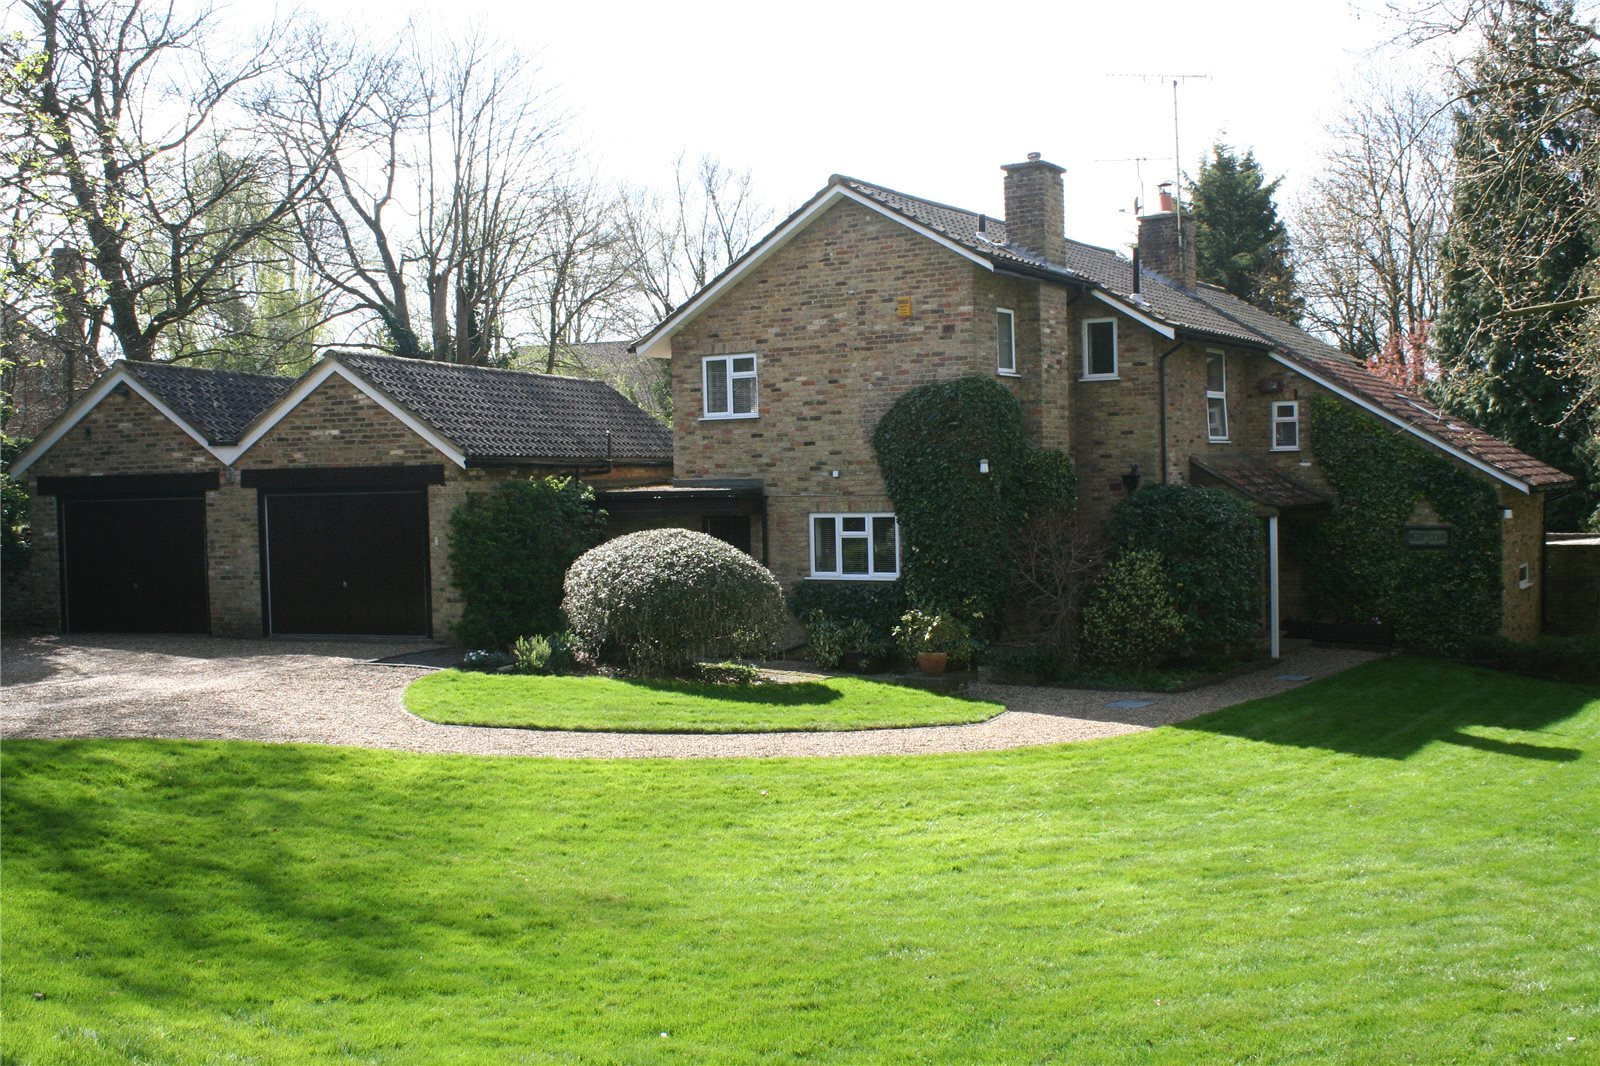 Maison unifamiliale pour l Vente à Ellis Avenue, Chalfont St. Peter, Gerrards Cross, Buckinghamshire, SL9 Gerrards Cross, Angleterre